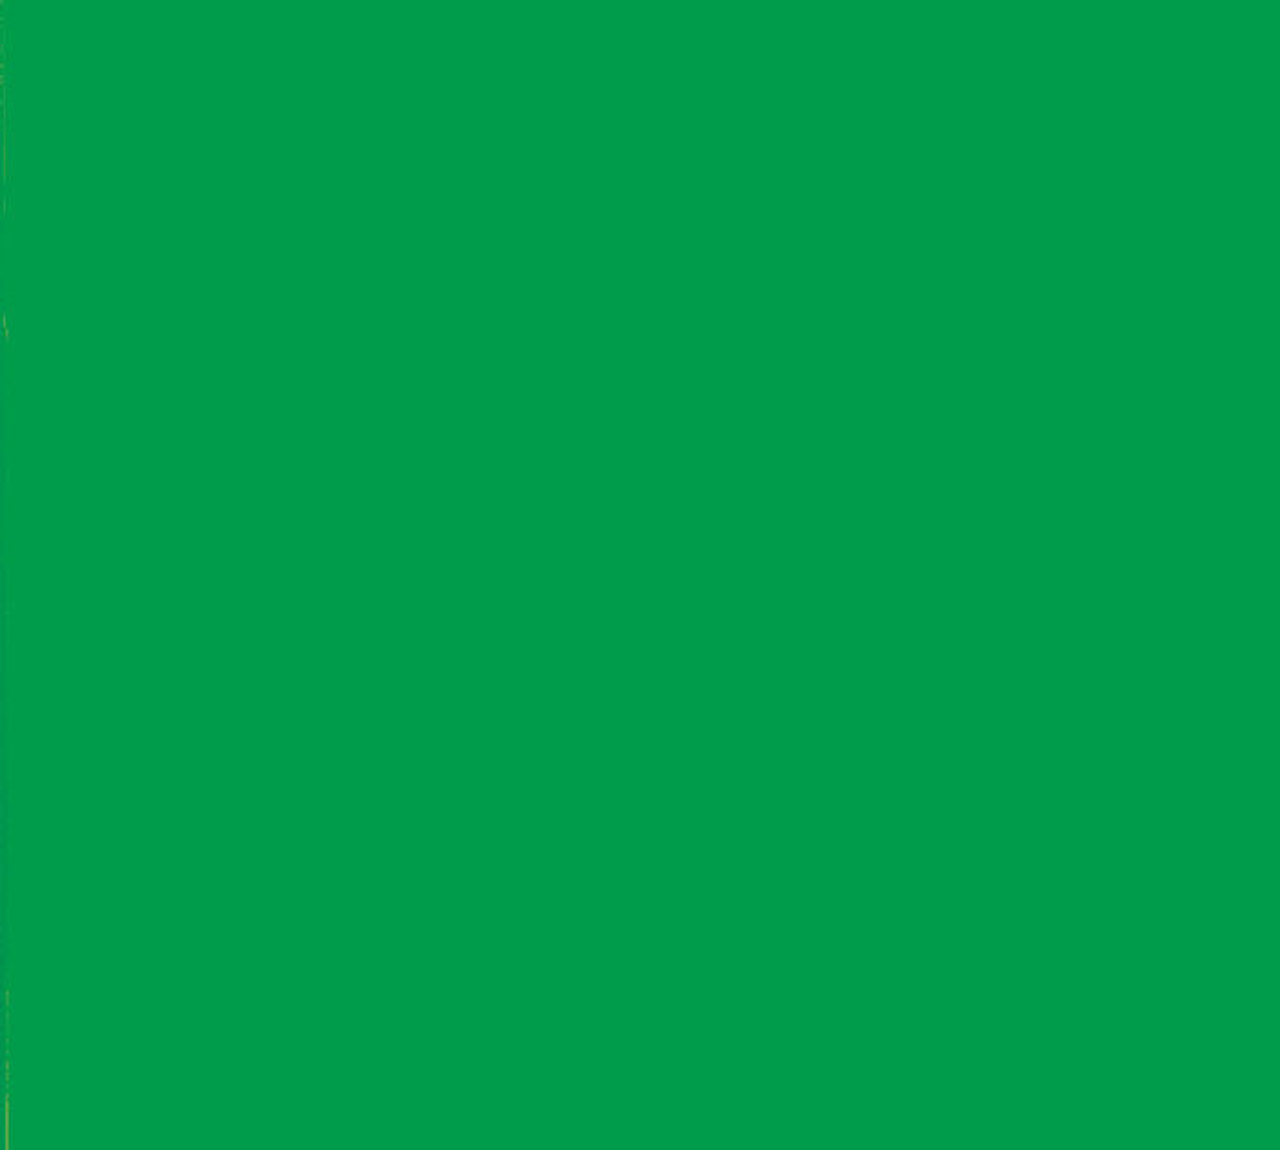 1280x1150 - Solid Green 1